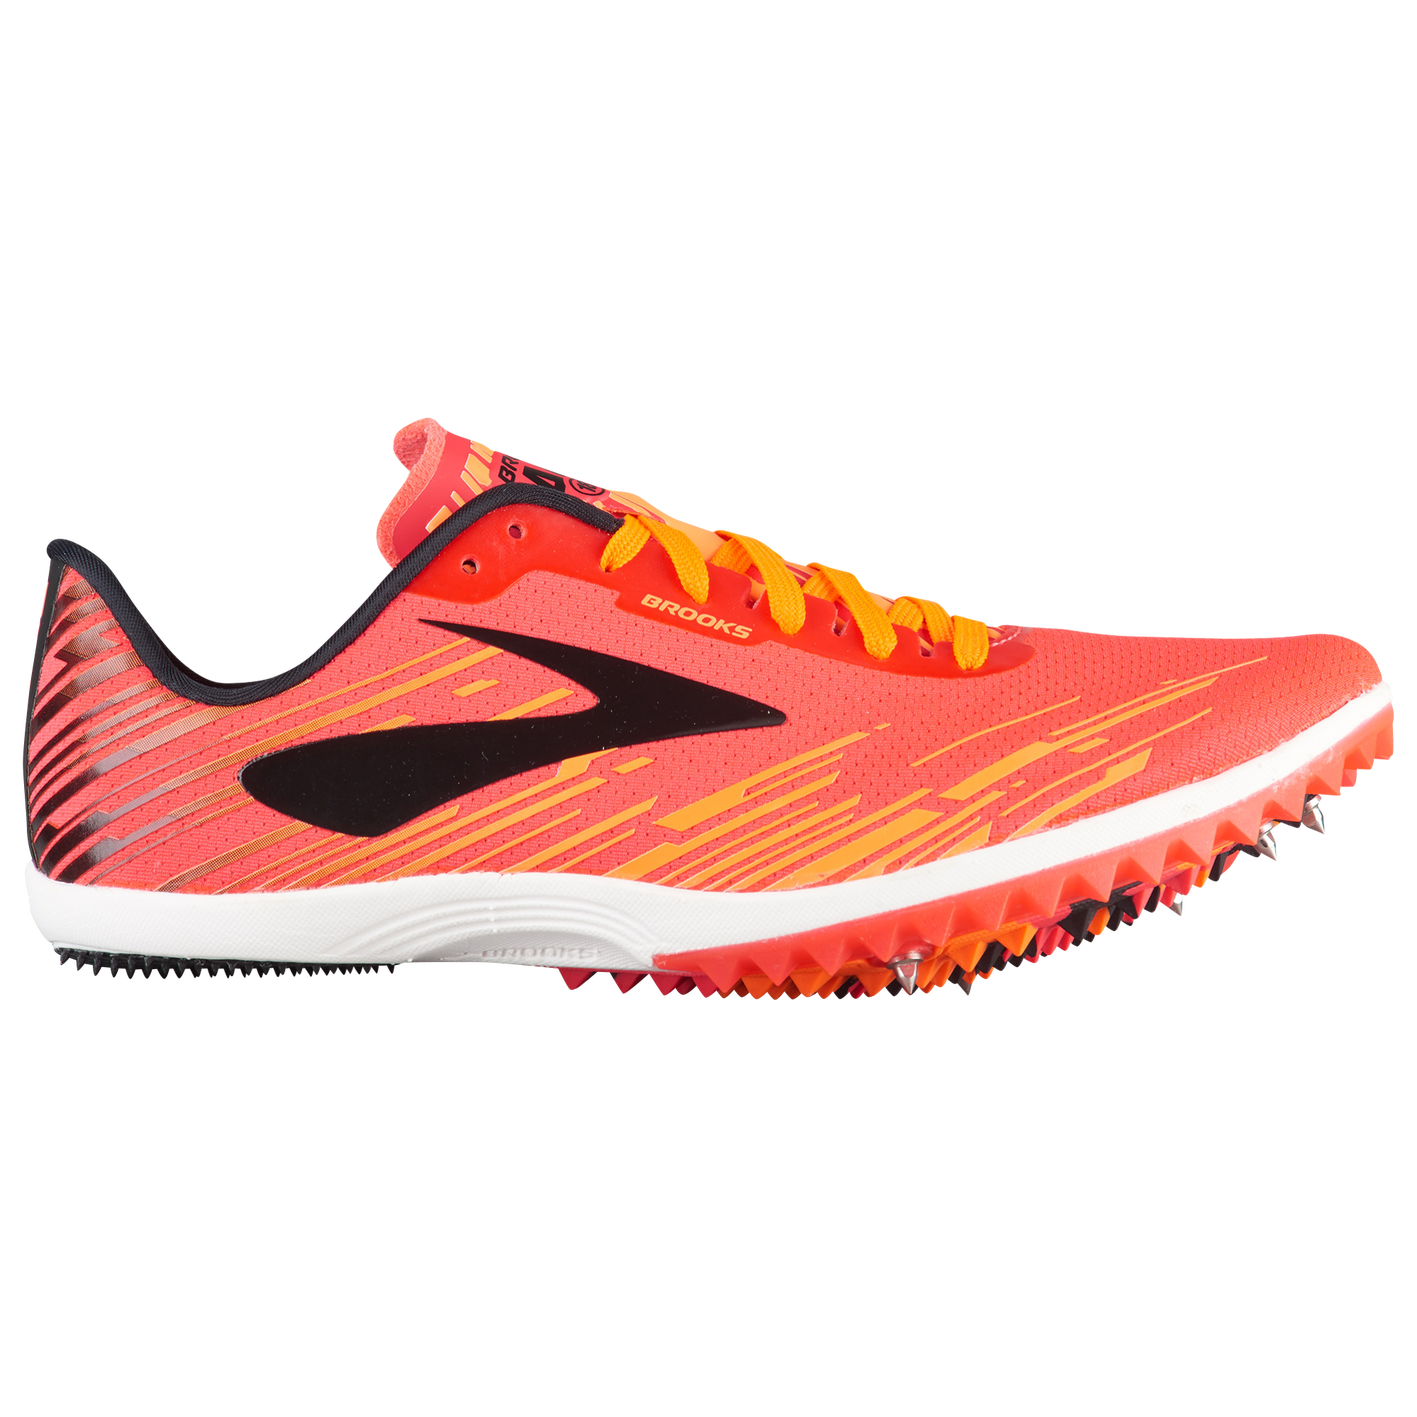 a97ab7c86a966 Brooks Mach 18 Spike - Women s - Track   Field - Shoes - Pink Orange ...